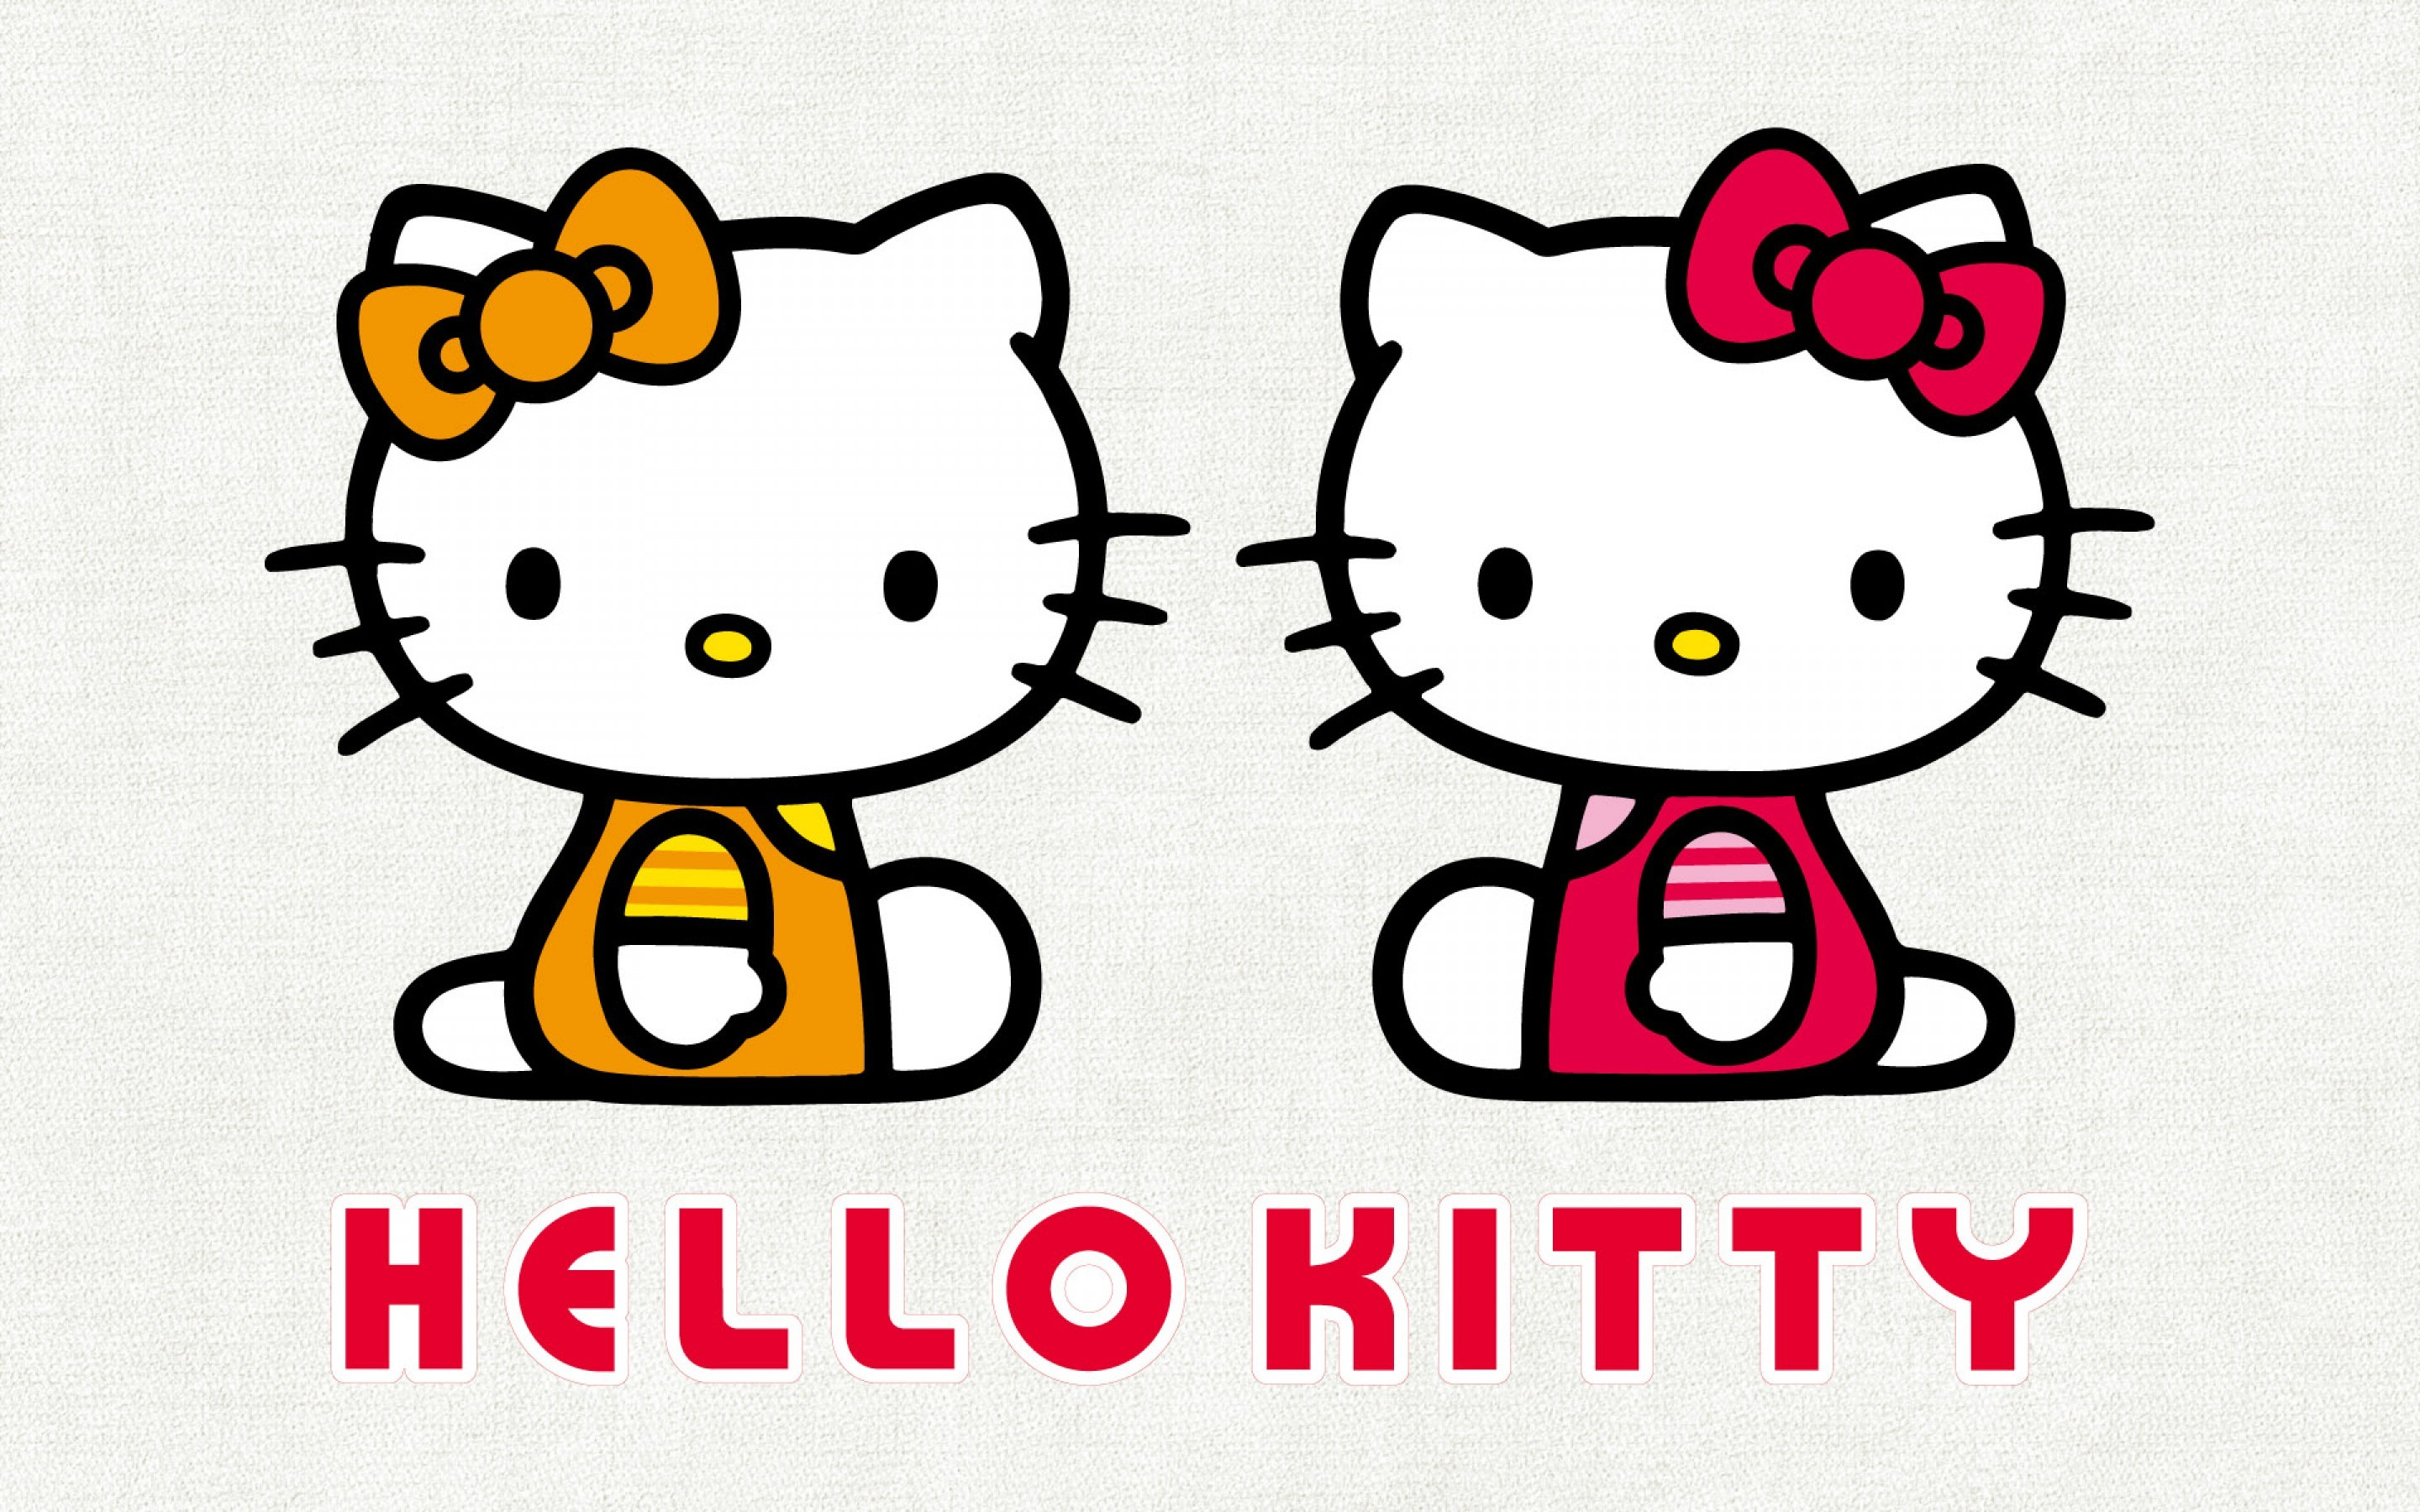 … Hello Kitty Wallpaper – with her twin sister Mimmy